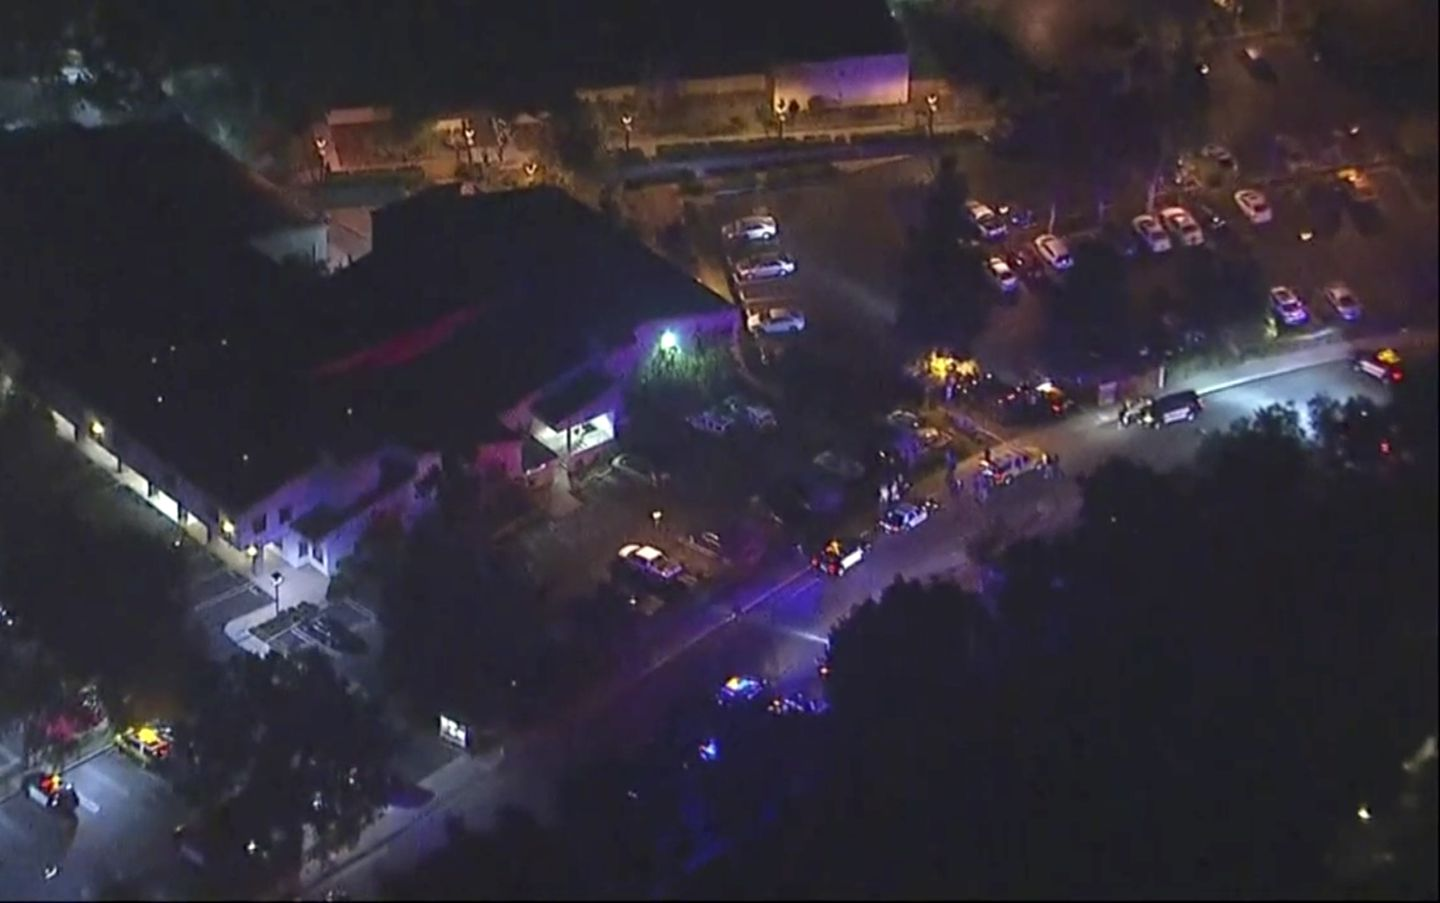 An image made from aerial video above the scene.